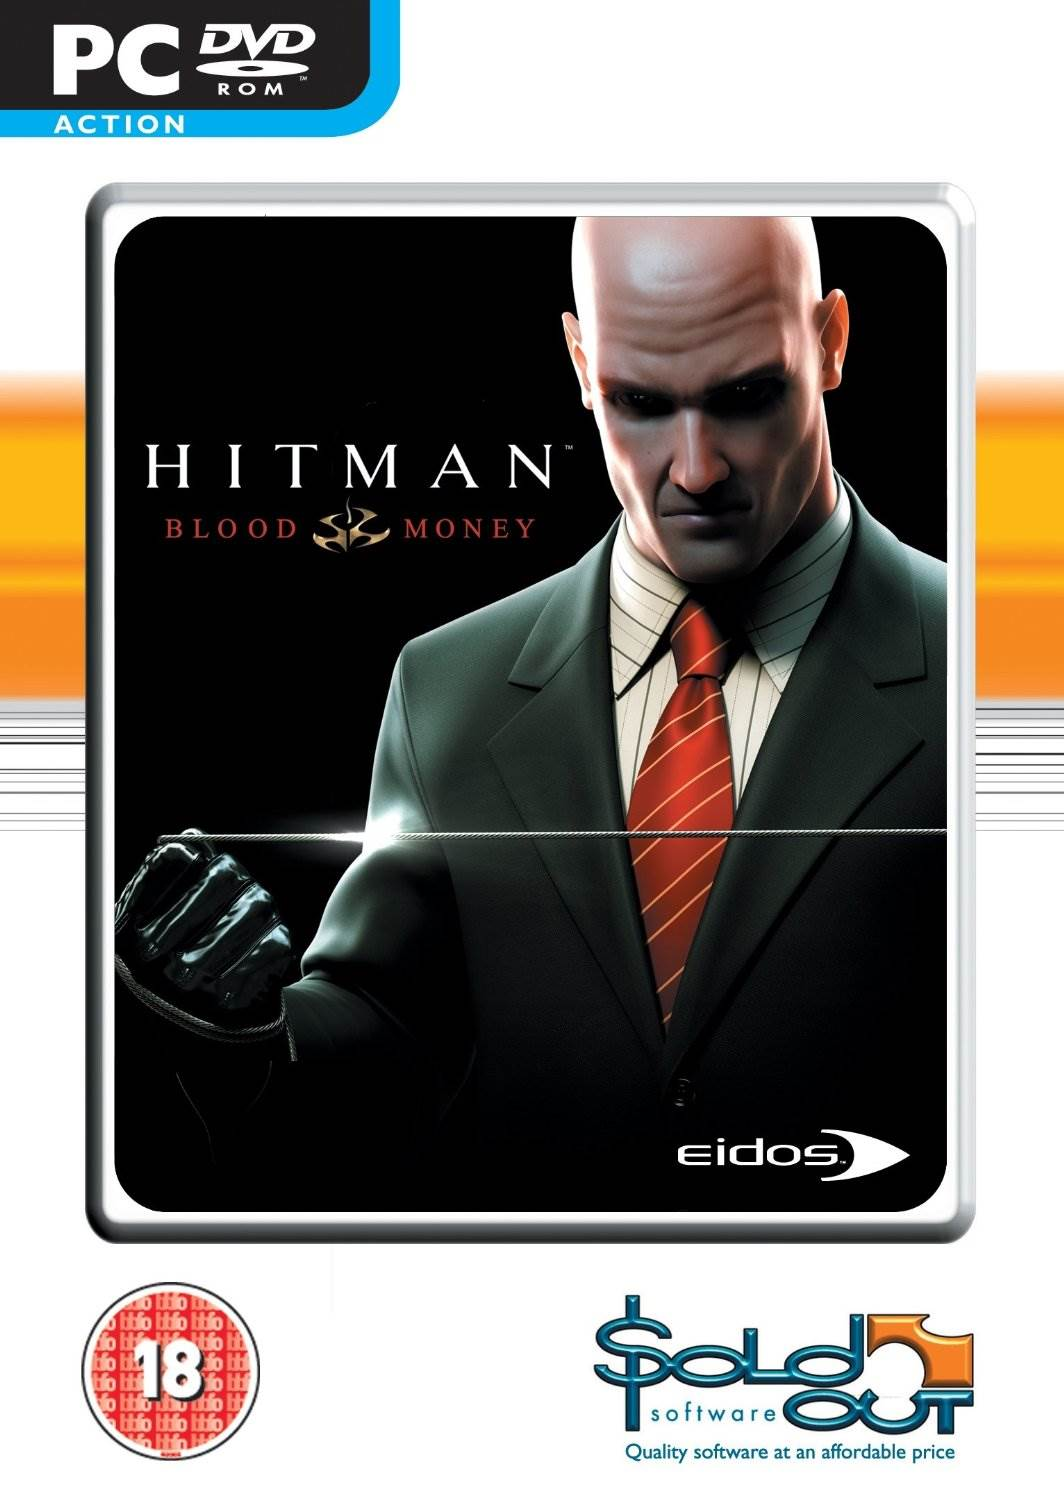 Naked patch for hitman erotic slut